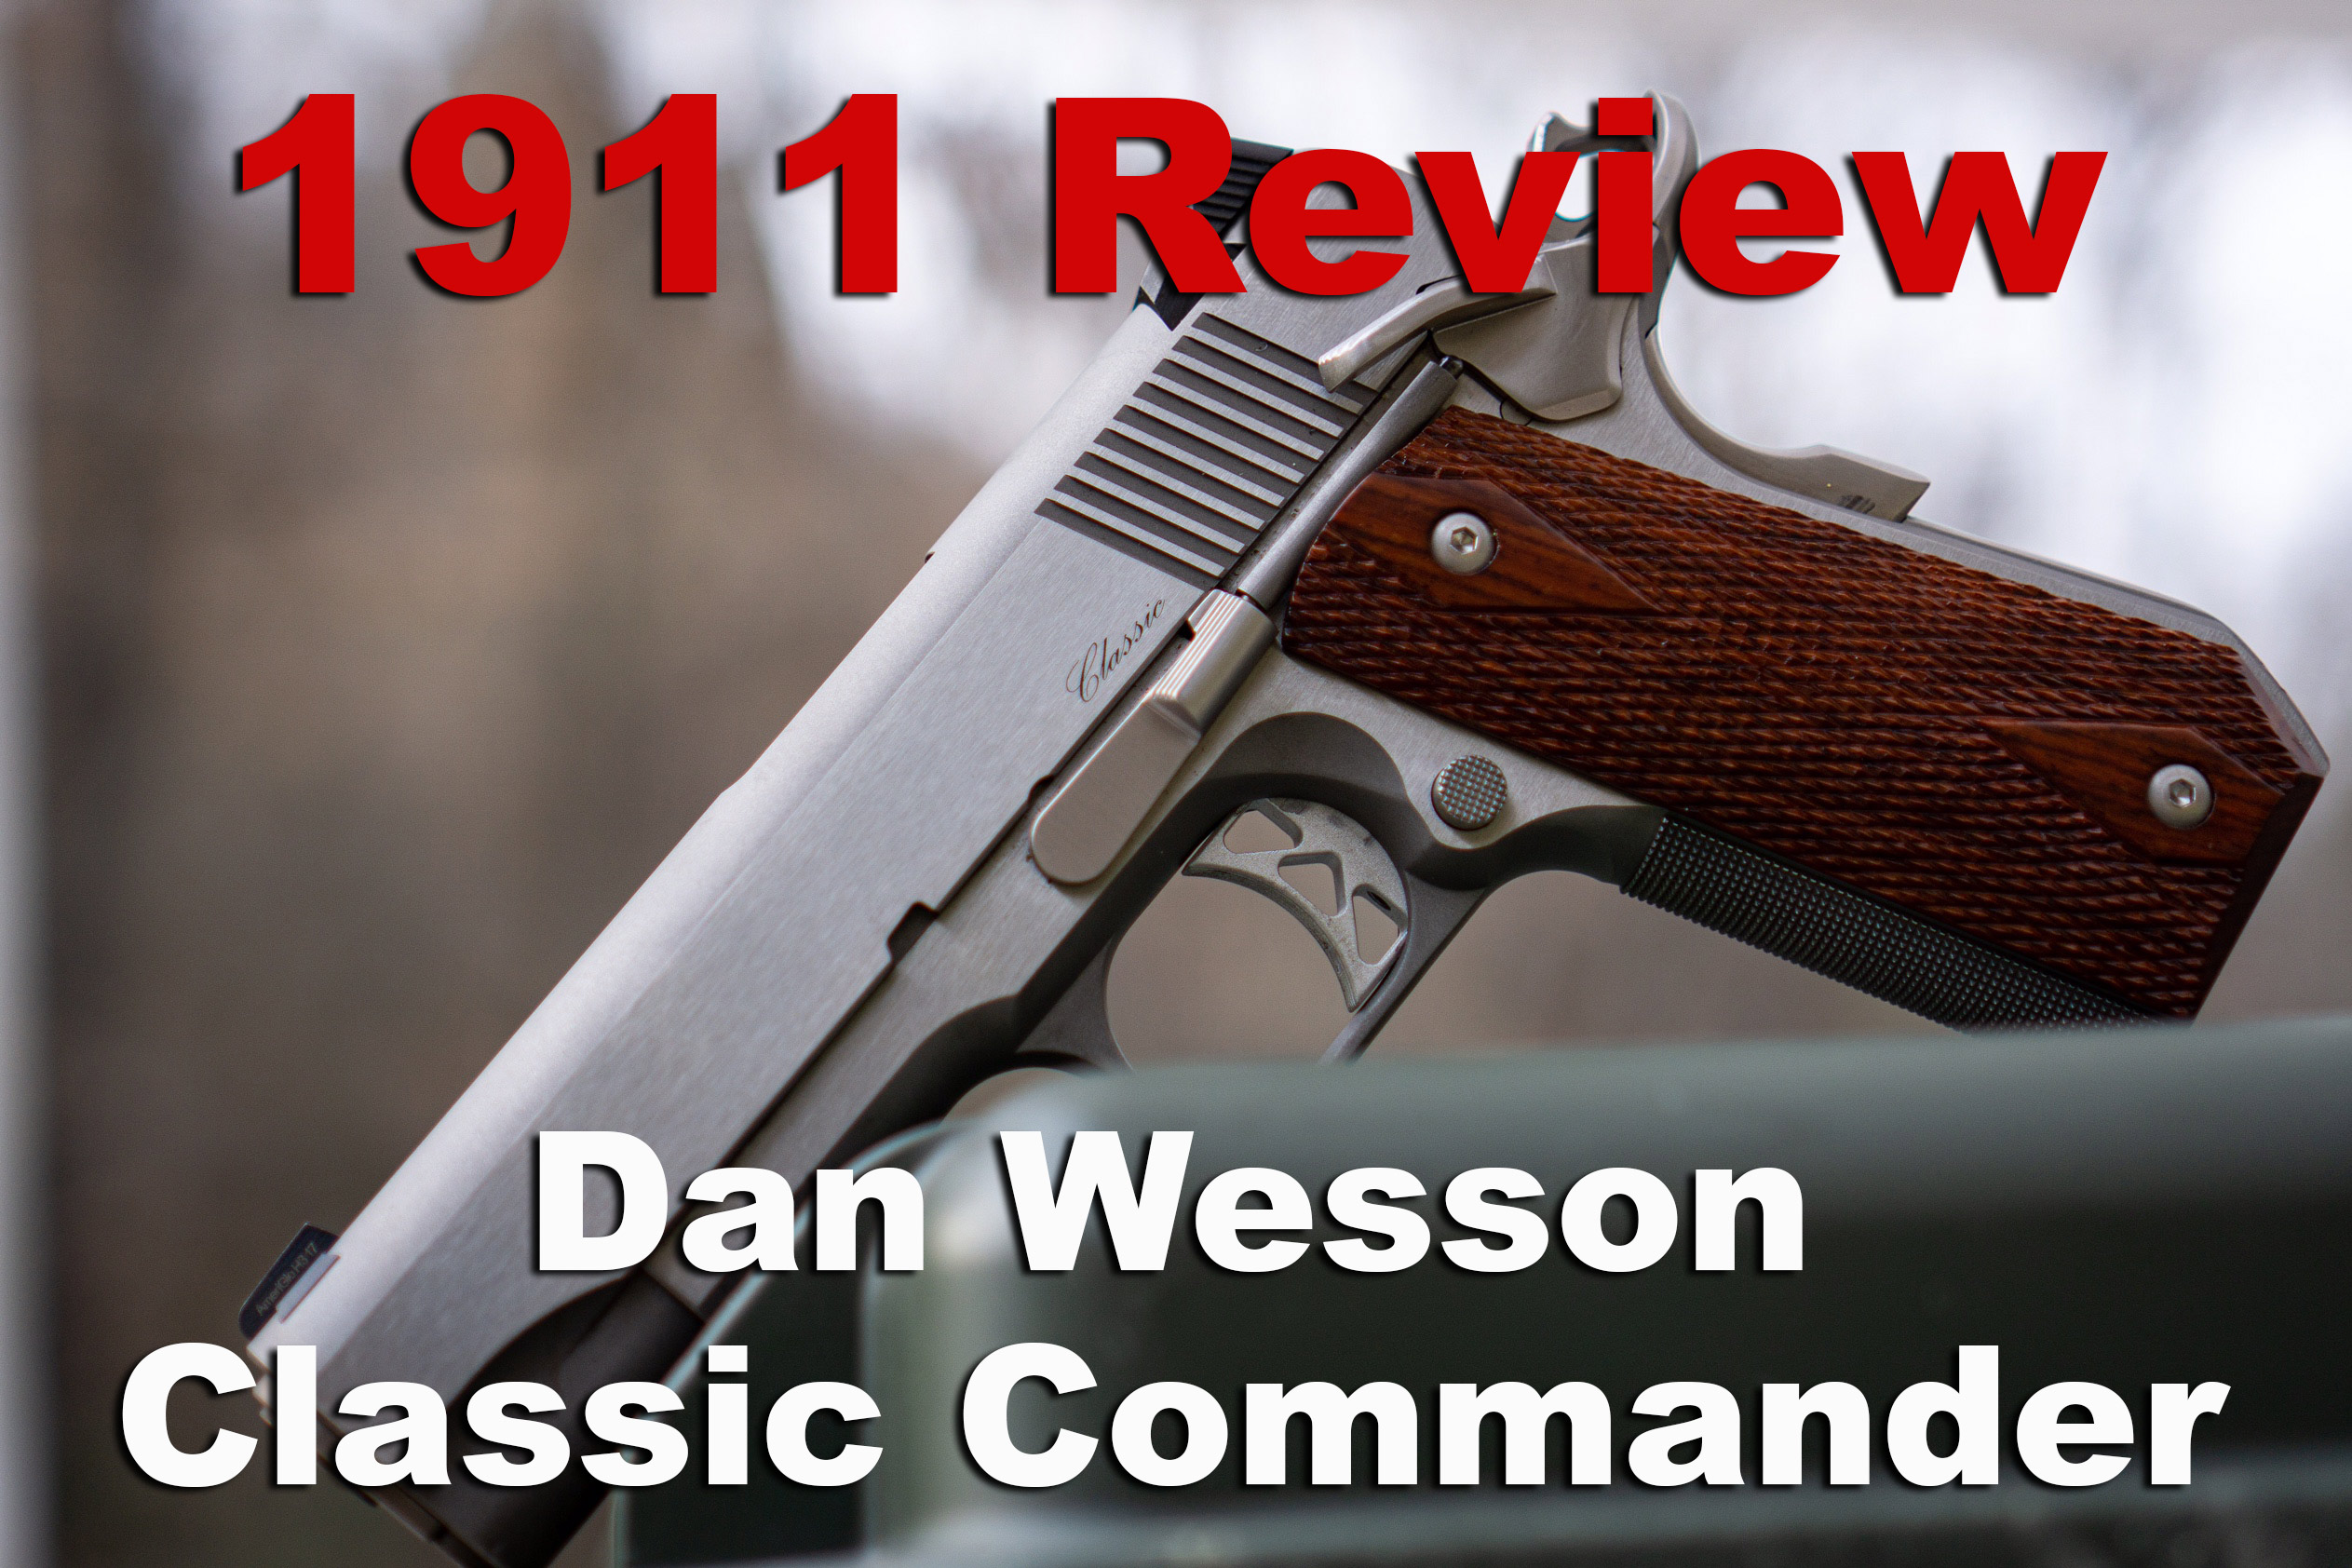 Dan Wesson 1911 pistol review